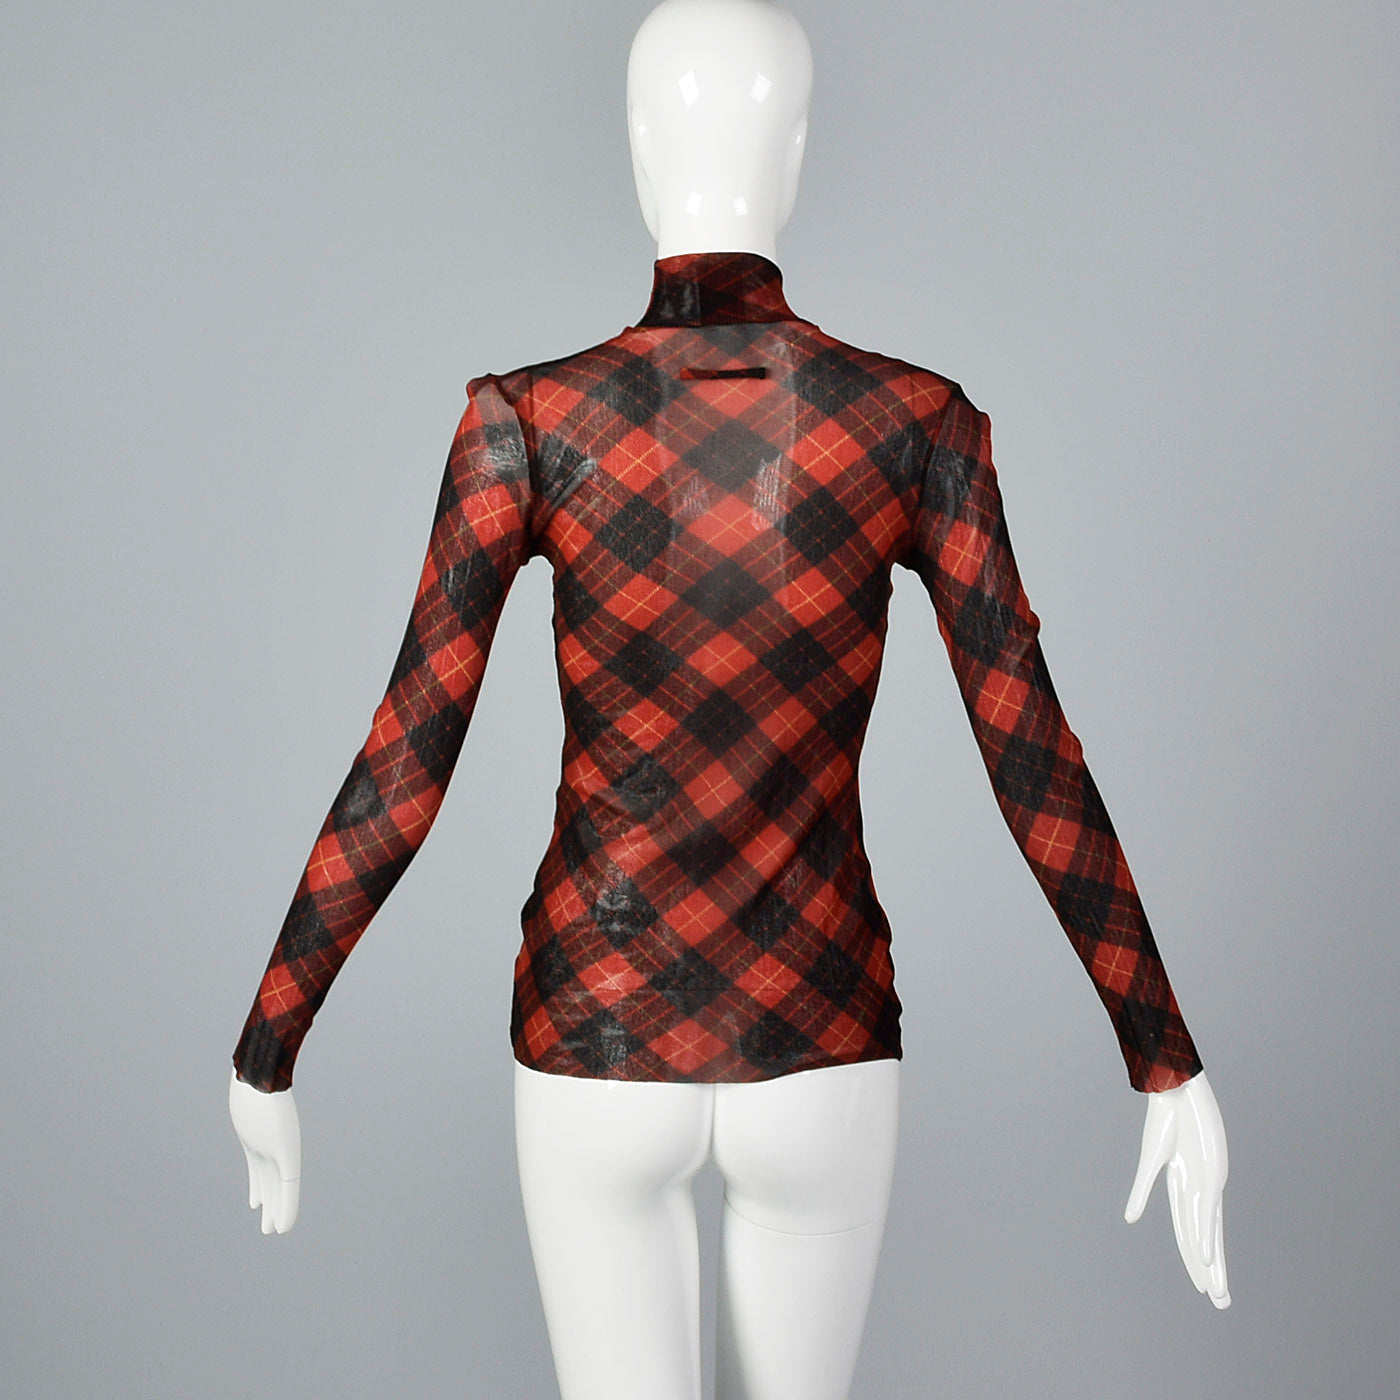 Jean Paul Gaultier Classique Tartan Plaid Stretch Mesh Top